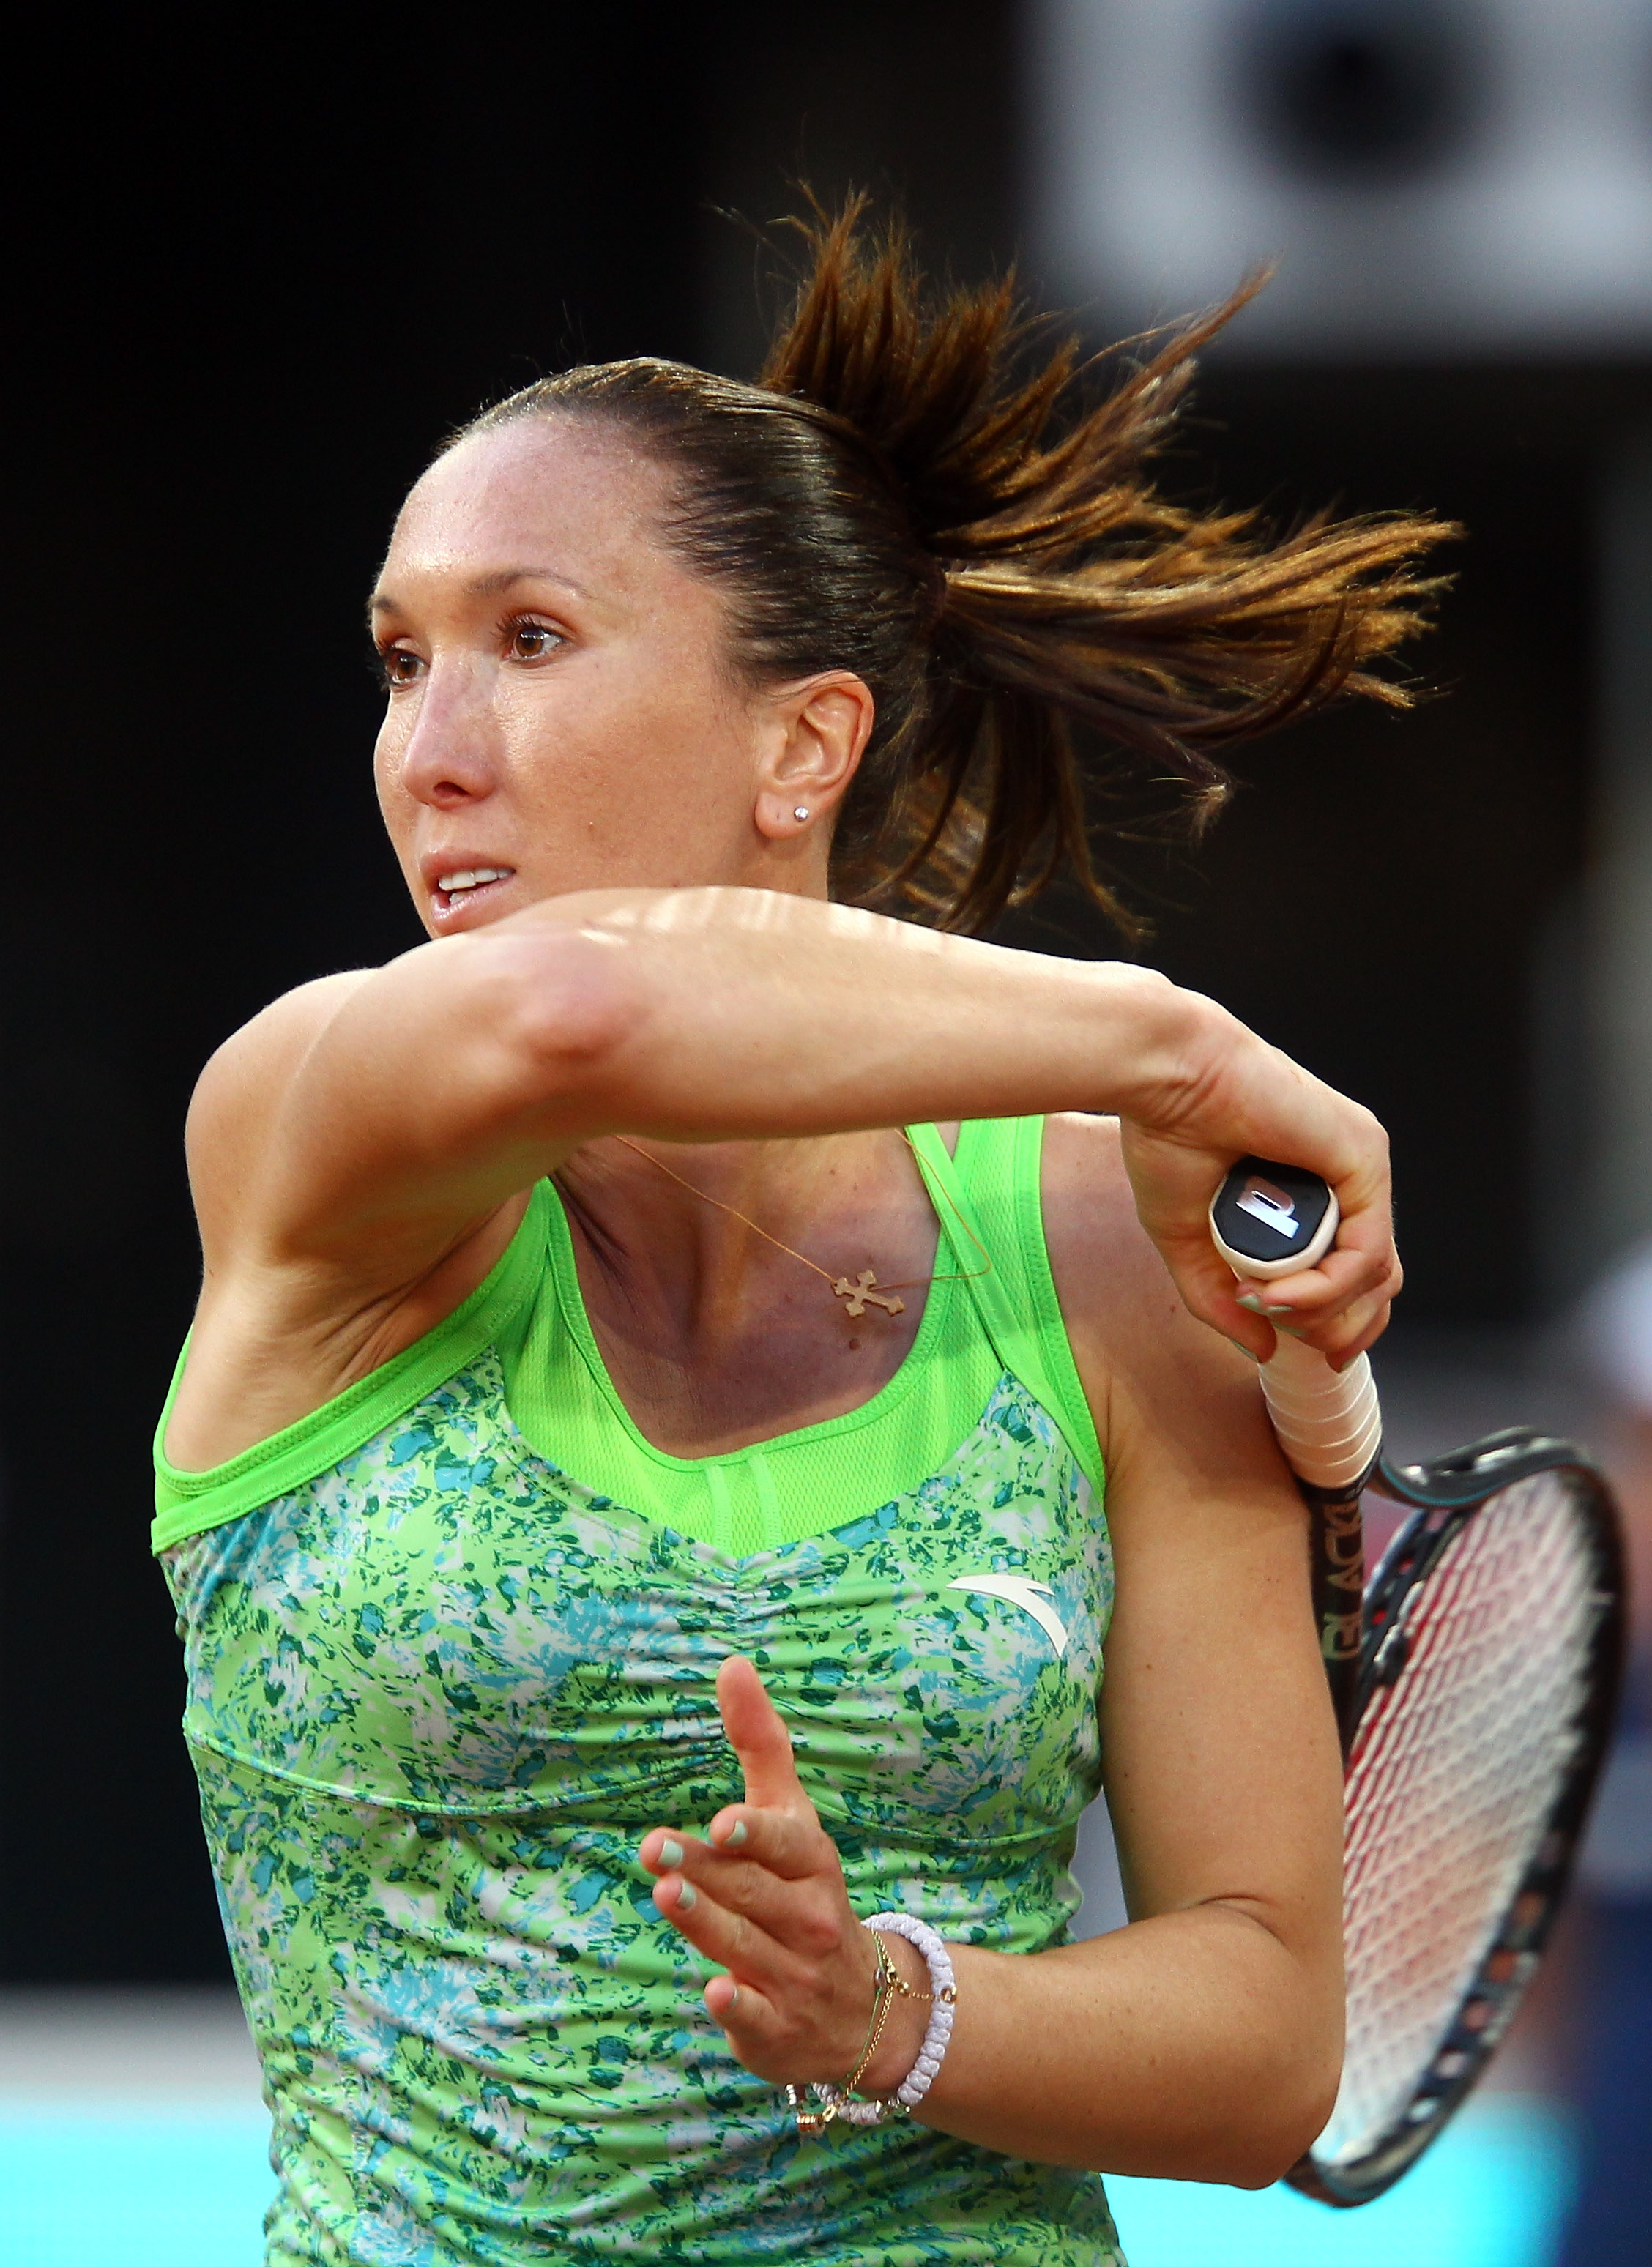 MADRID, SPAIN - MAY 01:  Jelena Jankovic of Serbia in action against Laura Pous-Tio of Spain during day two of the Mutua Madrilena Madrid Open Tennis on May 1, 2011 in Madrid, Spain.  (Photo by Julian Finney/Getty Images)